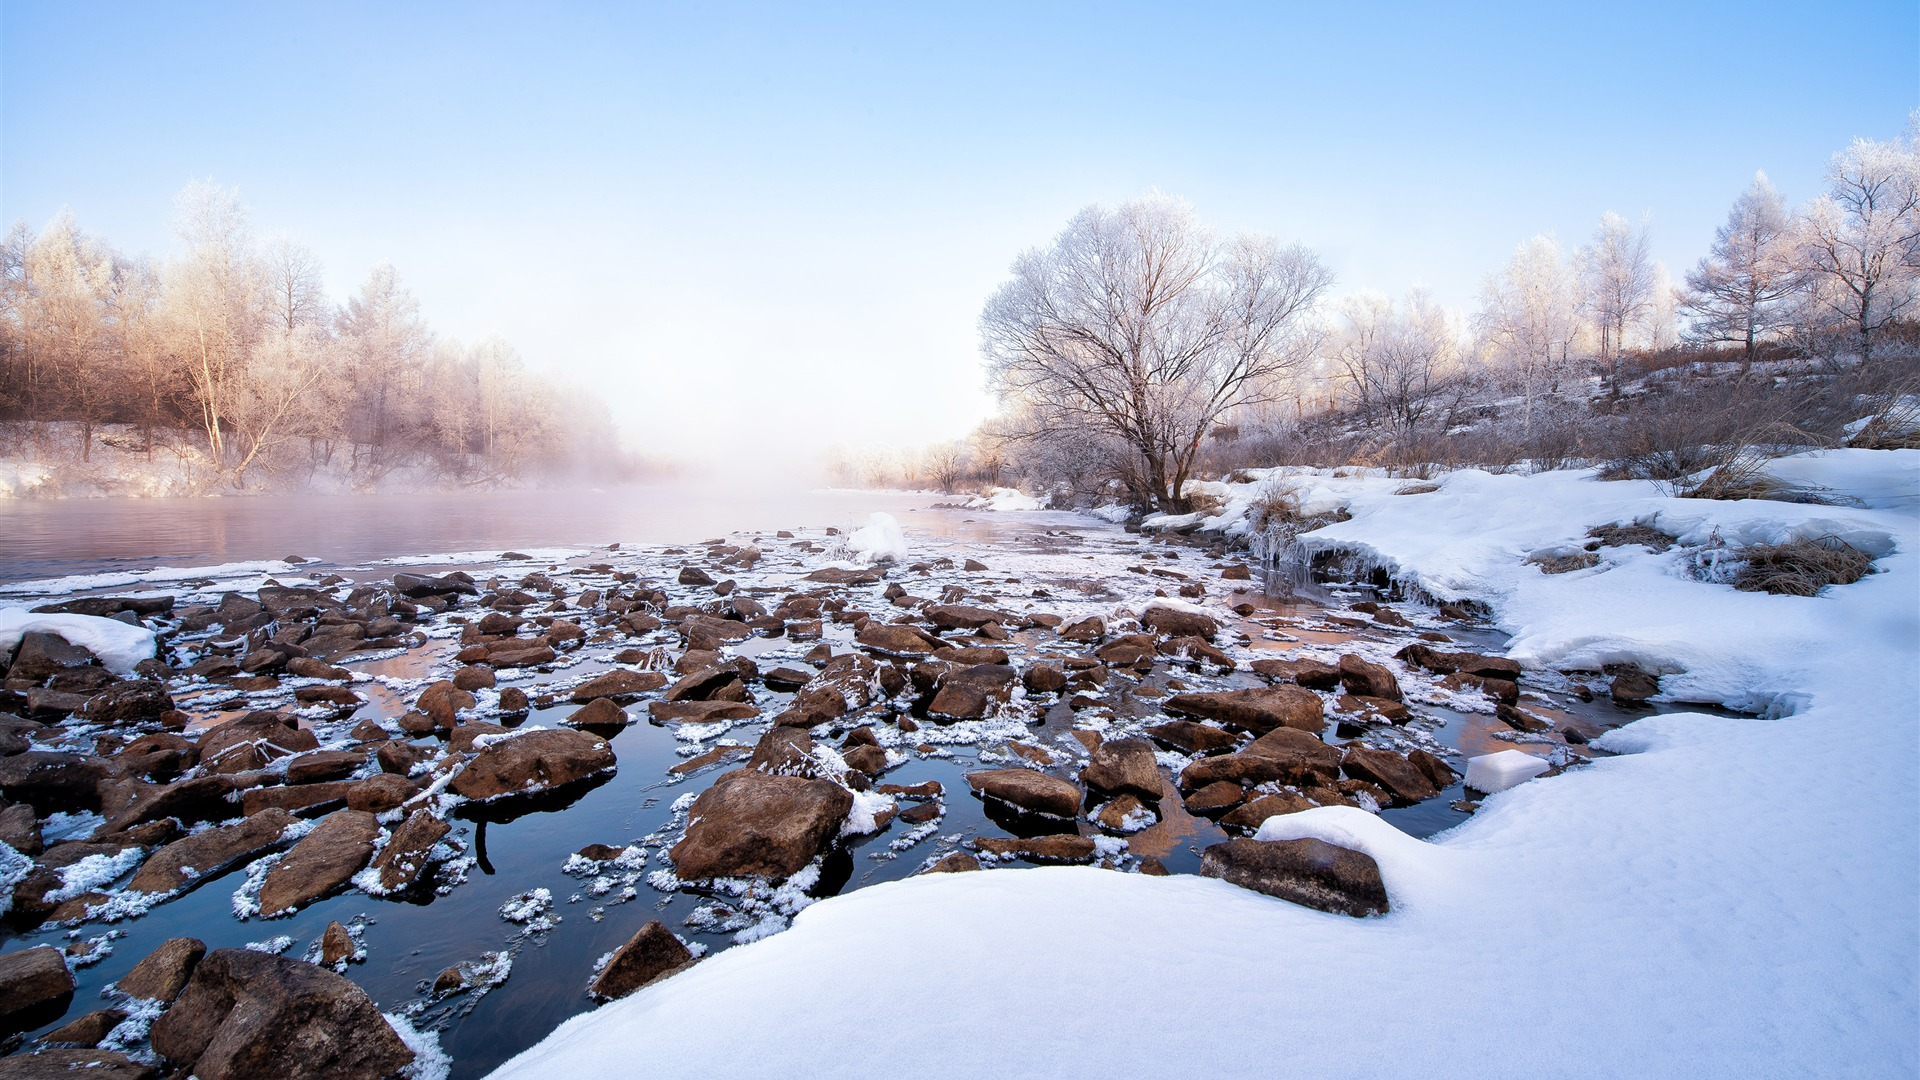 Winter Landscape Snow Covered River Morning Scenery Pictures